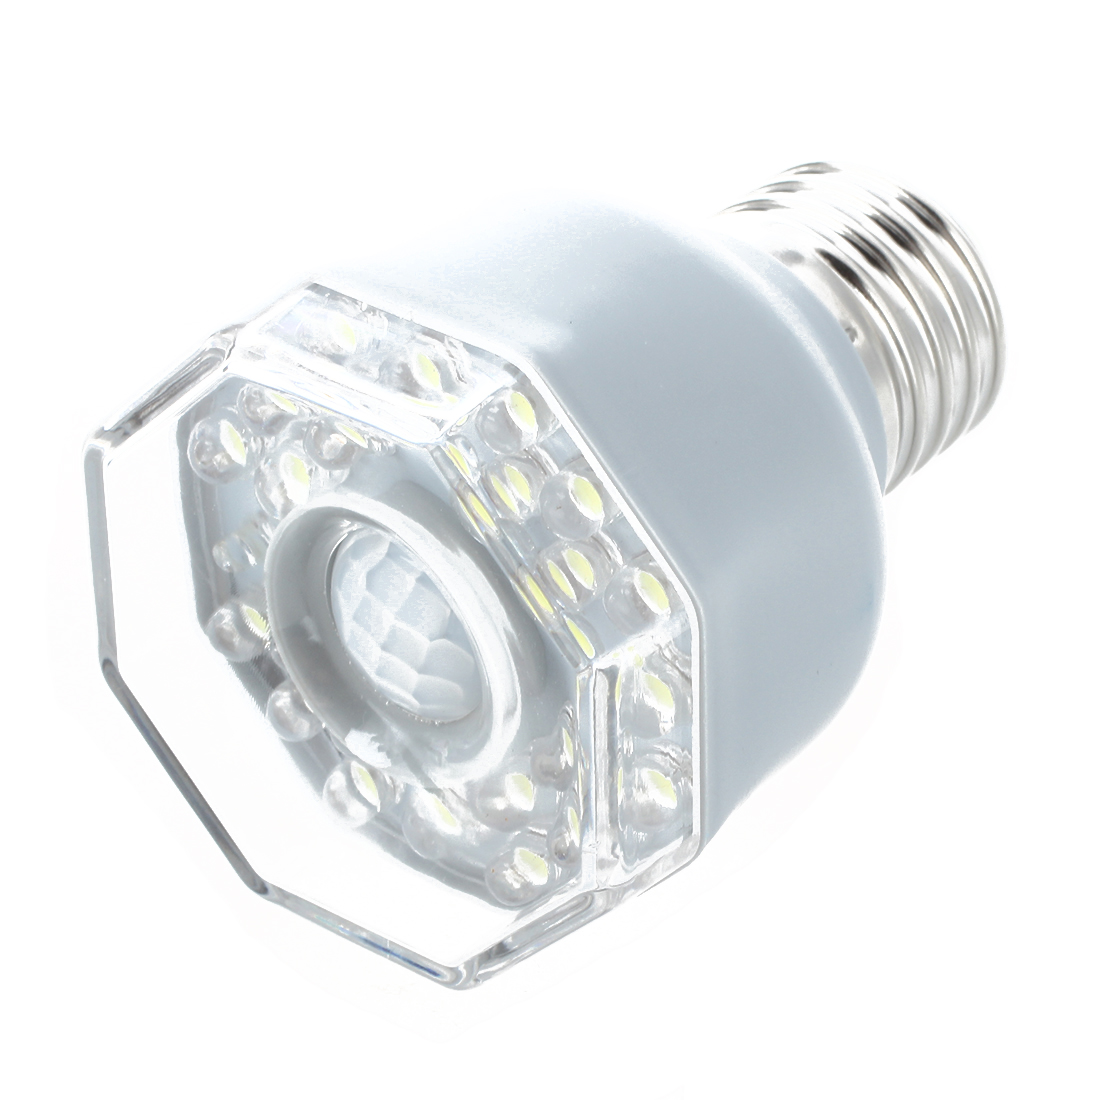 e27 24 led night light lamp motion sensor white h7h5 ebay. Black Bedroom Furniture Sets. Home Design Ideas